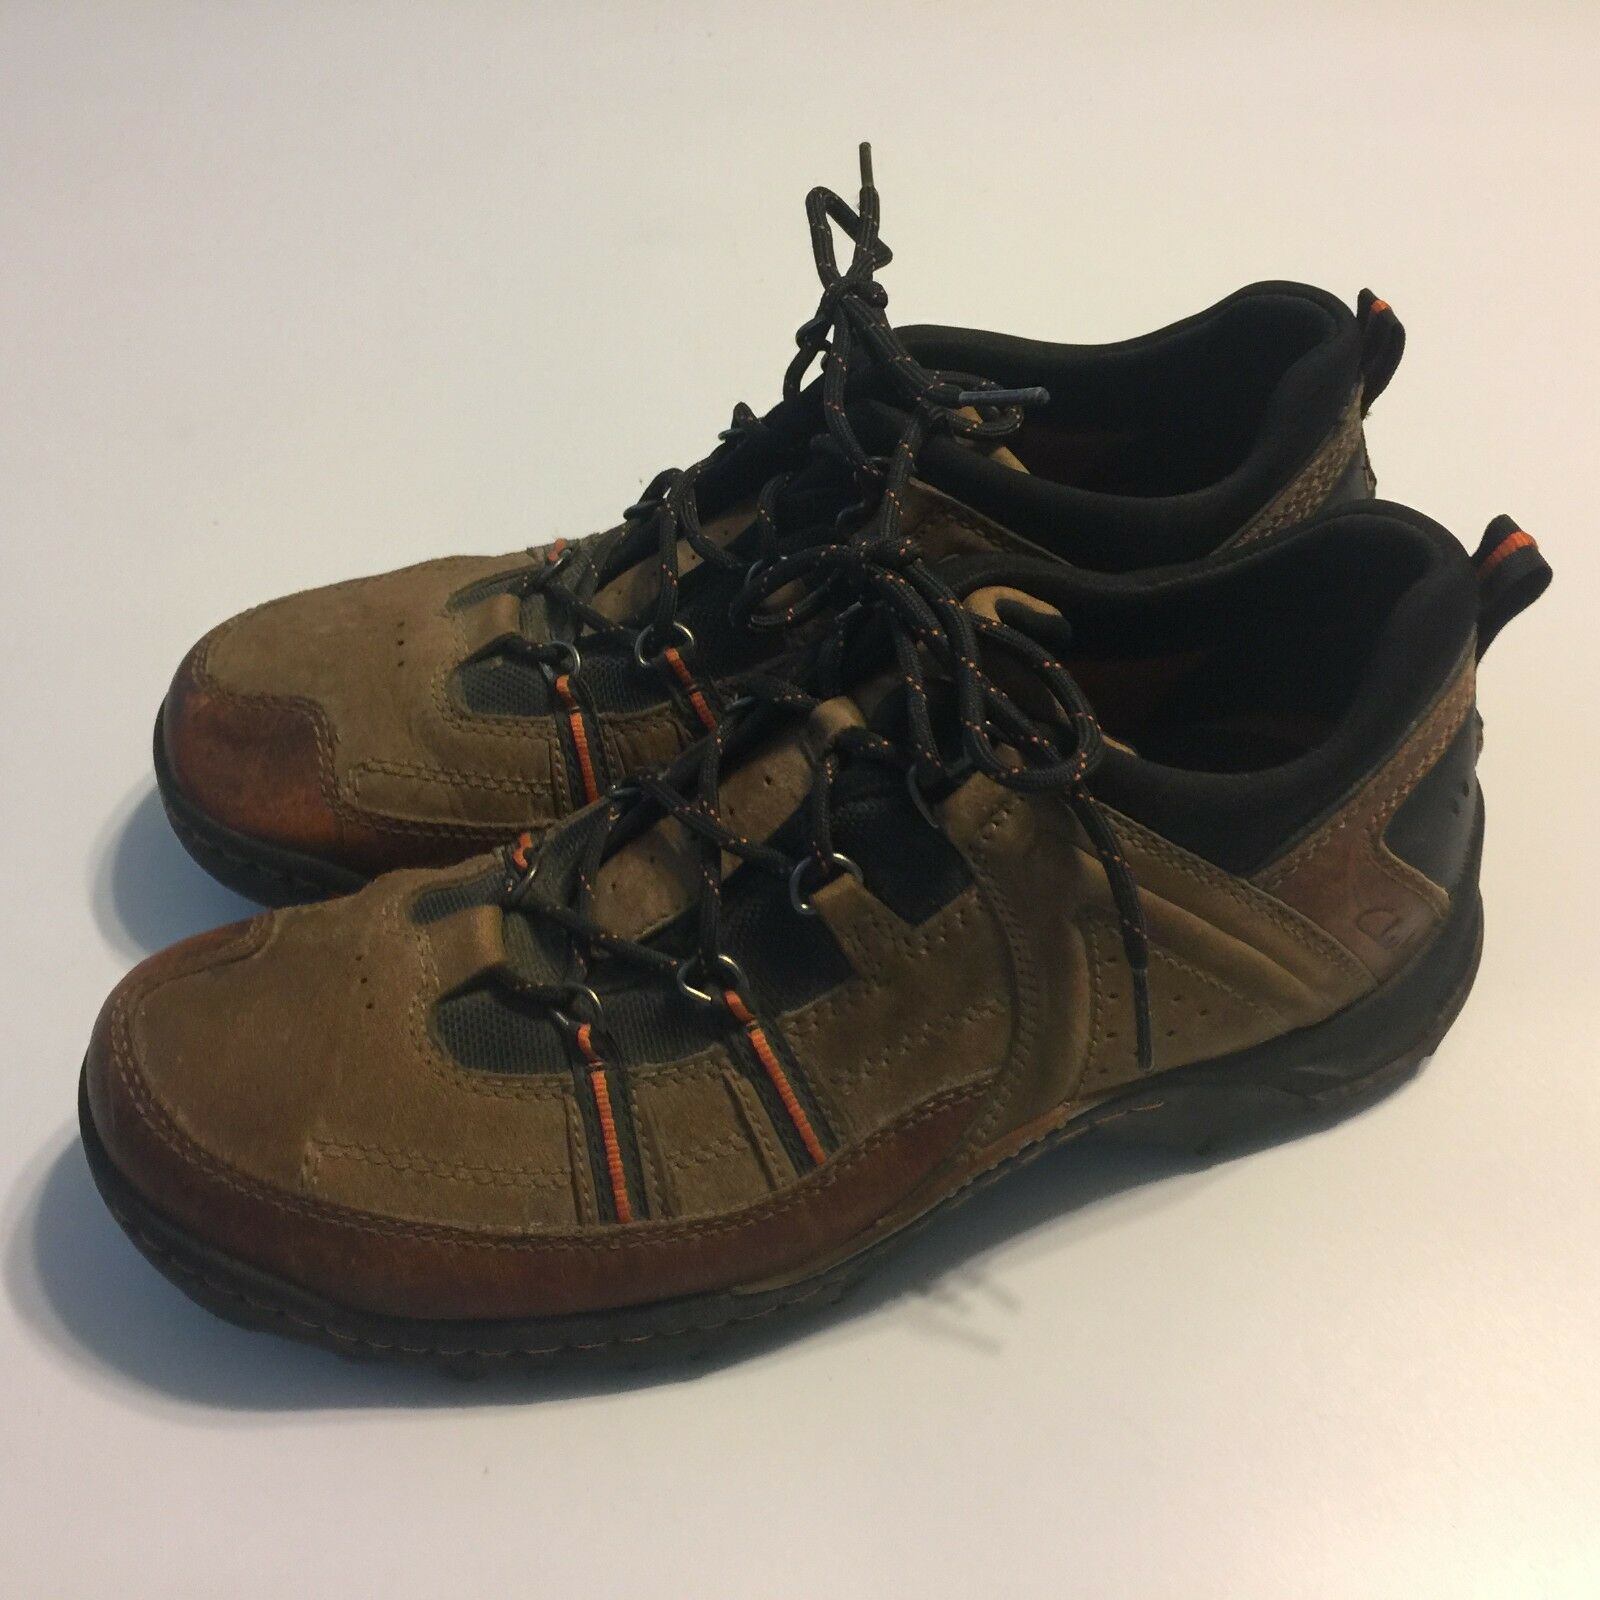 CLARKS 73191 MENS Hiking Trail Walking Brown Leather shoes 9.5 M Lace Up